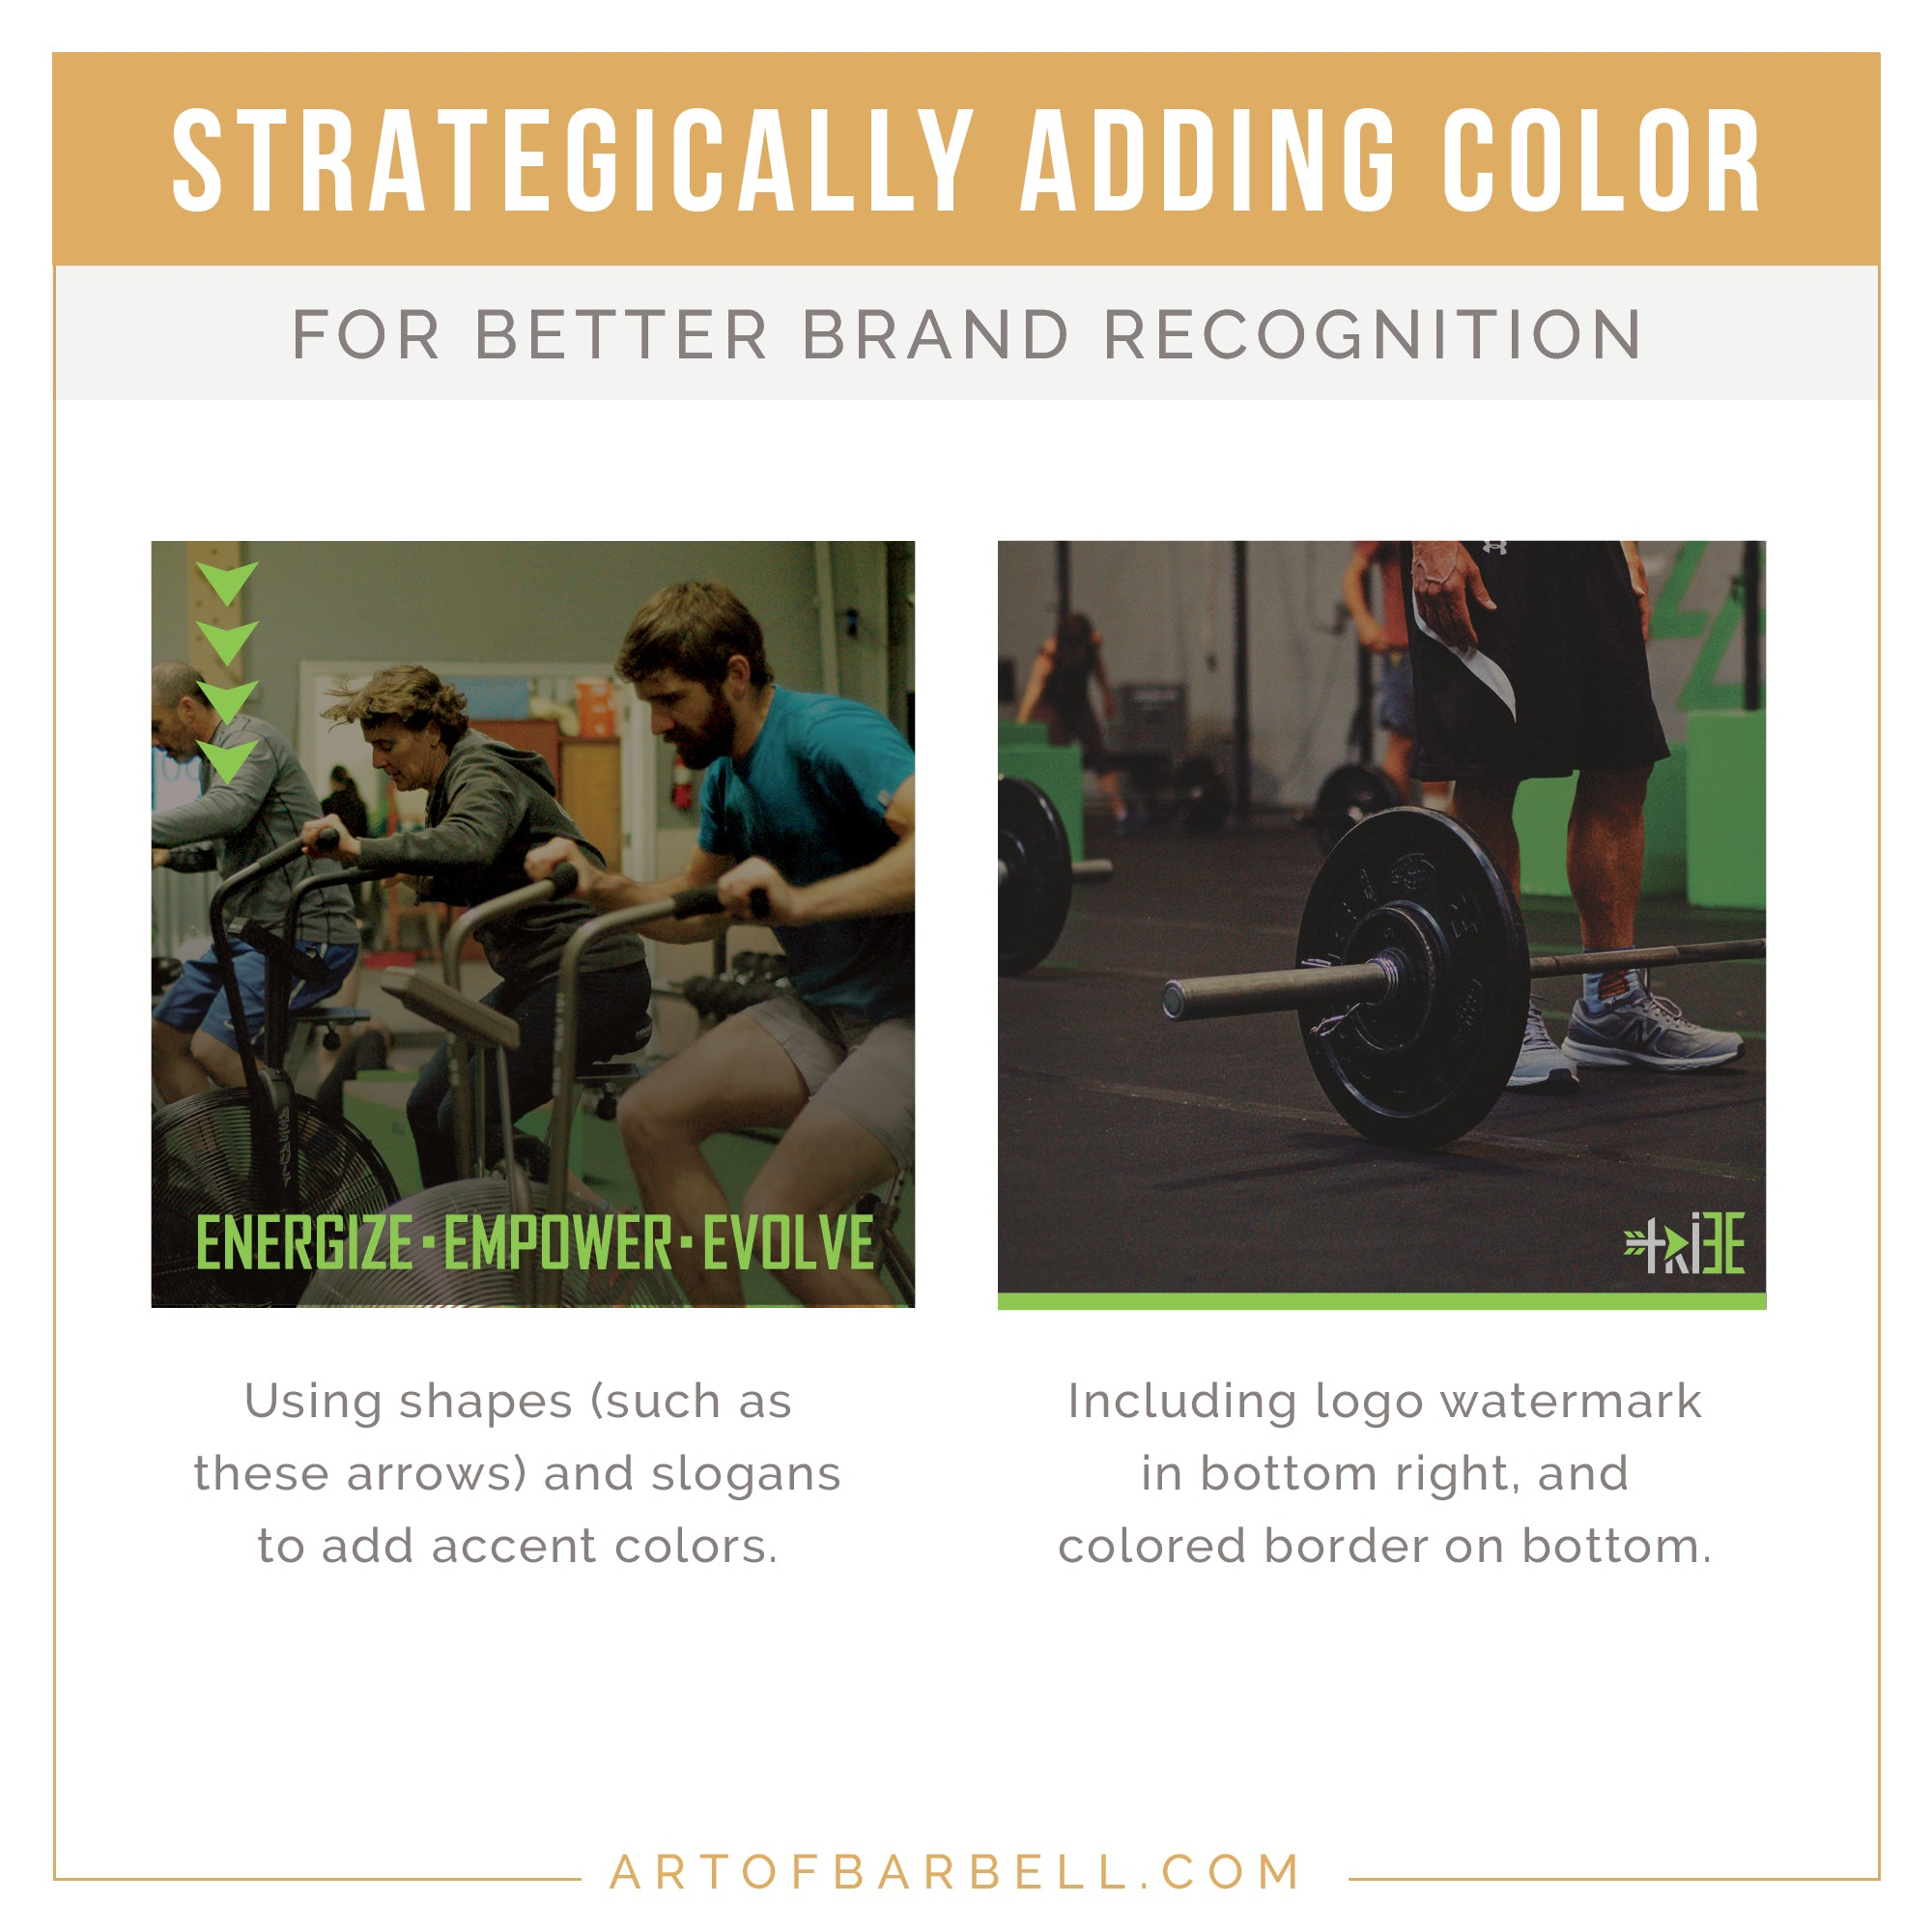 Incorporating lines, shapes and icons with your accent color to better brand your images